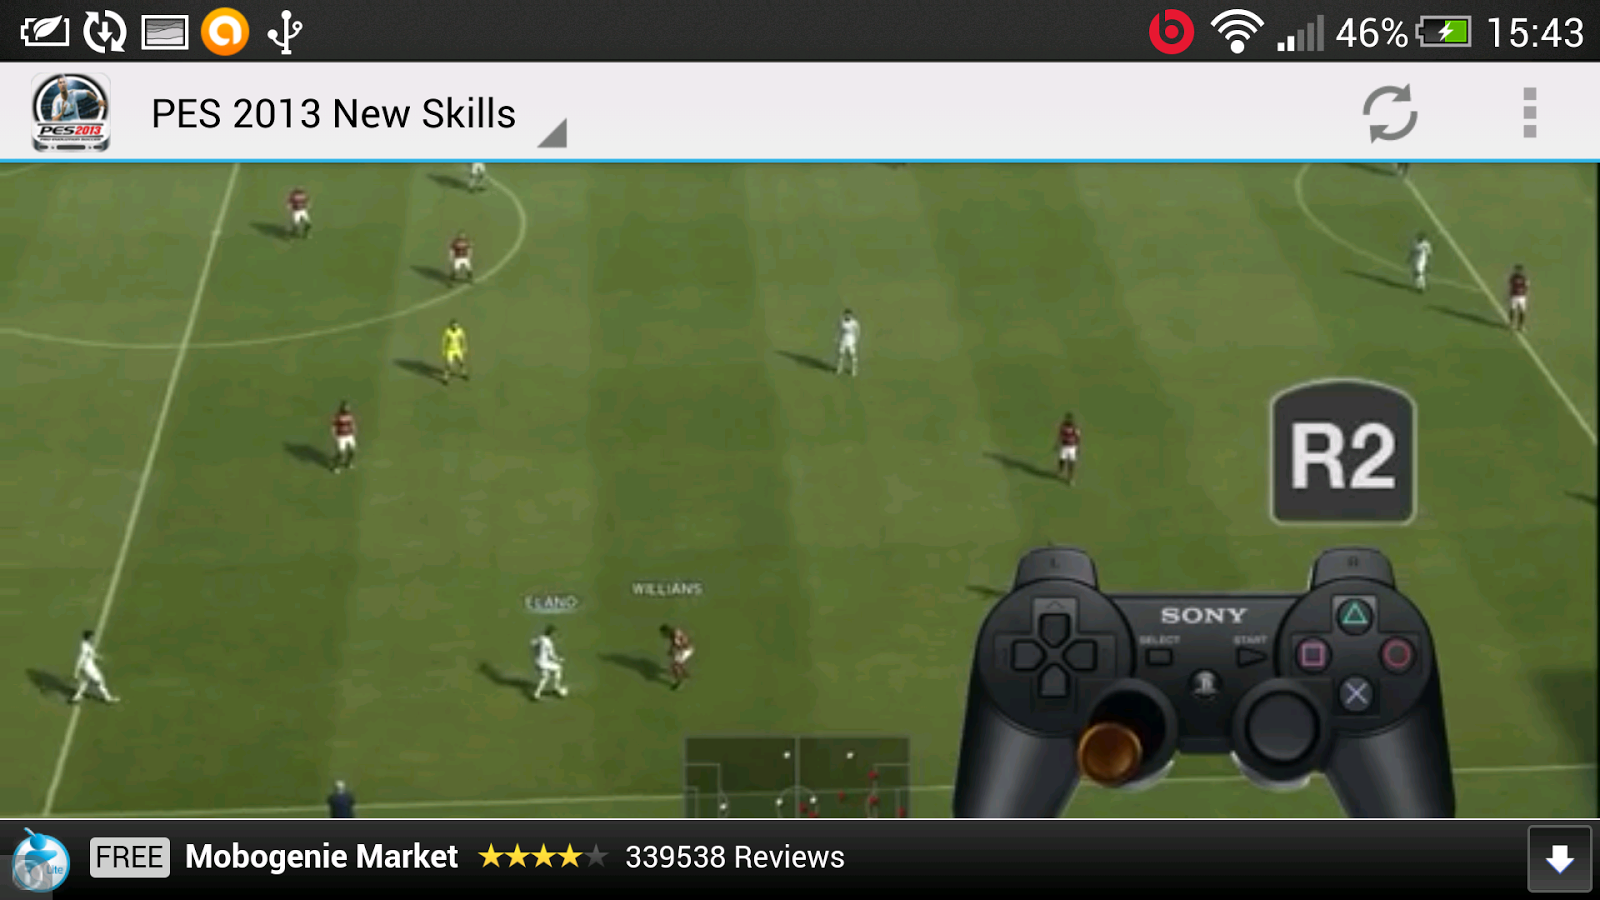 PES 2013 New Skills - screenshot